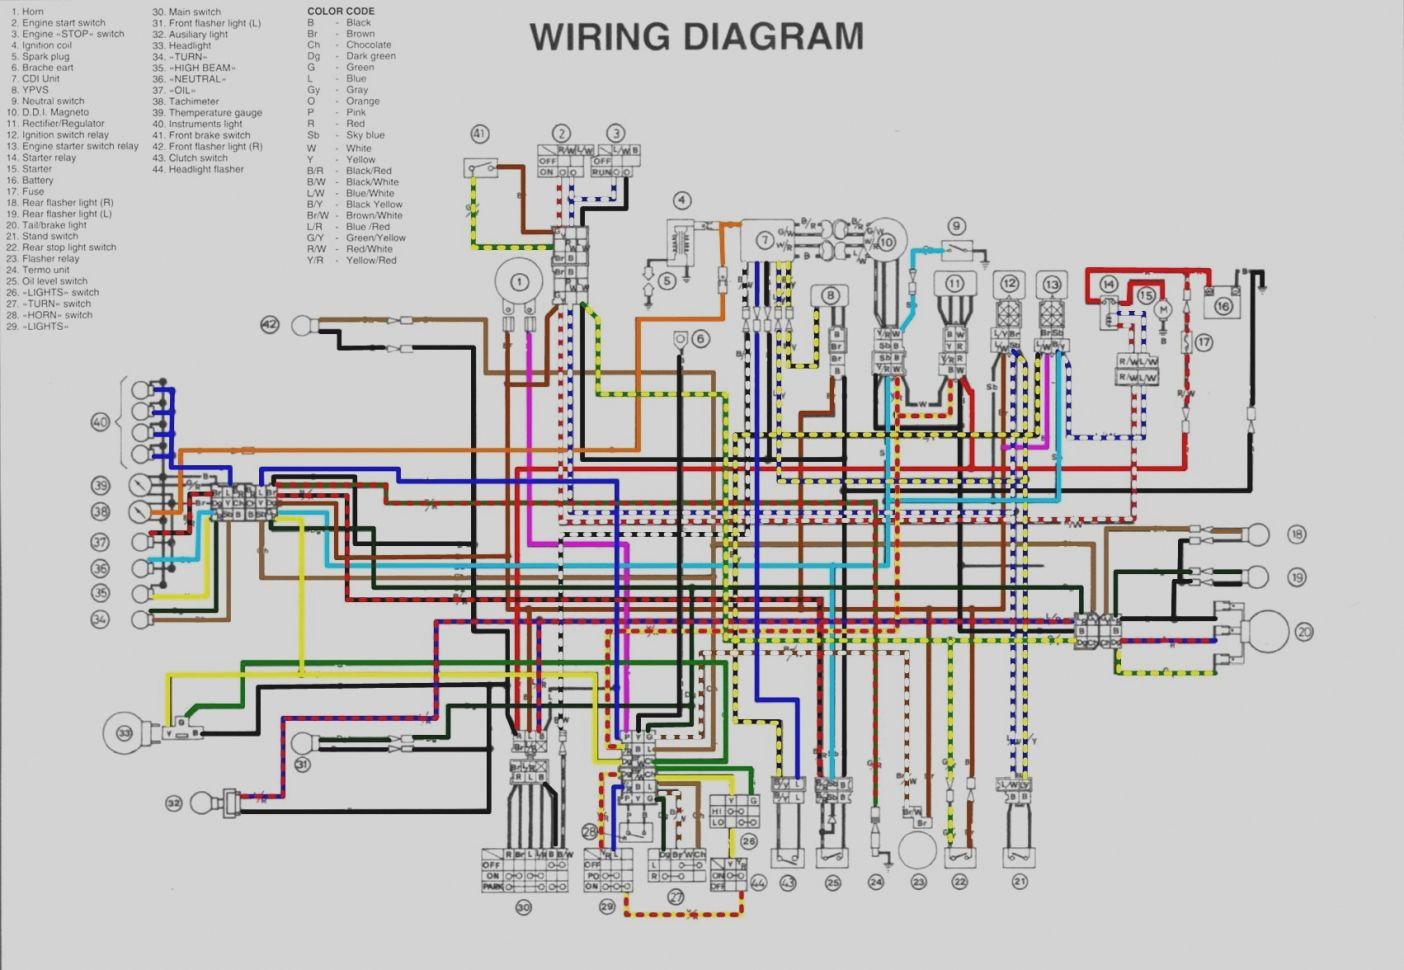 Yamaha Yfz 450 Wiring Diagram Diagram Electrical Wiring Diagram Yamaha